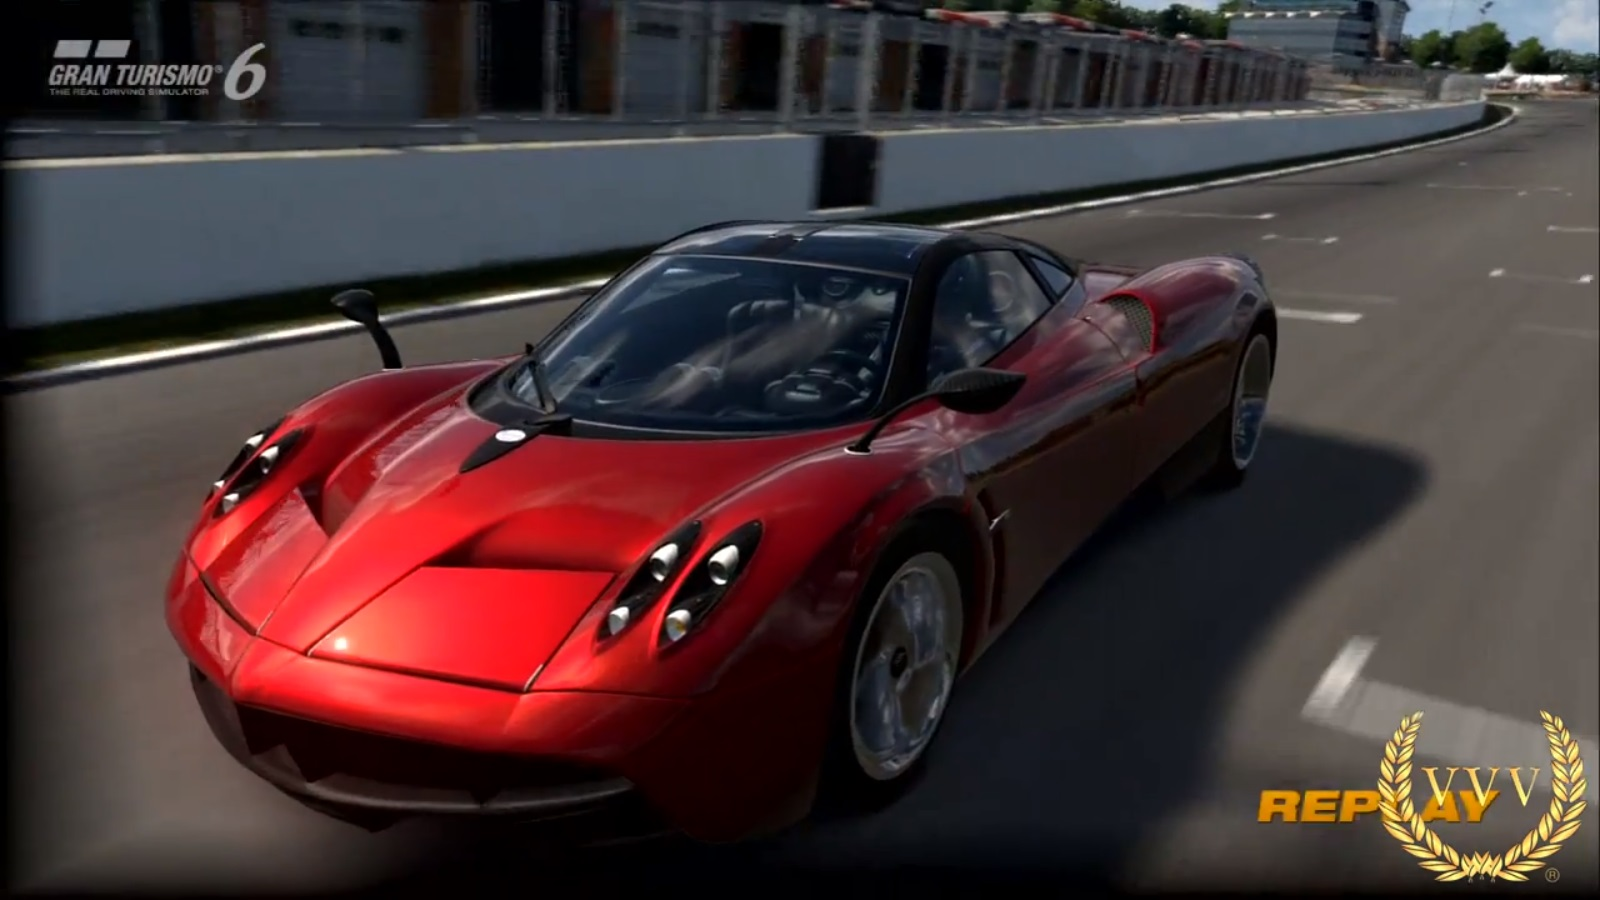 gran turismo 6 multi cam gameplay pagani huayra at brands hatch grand prix circuit team vvv. Black Bedroom Furniture Sets. Home Design Ideas